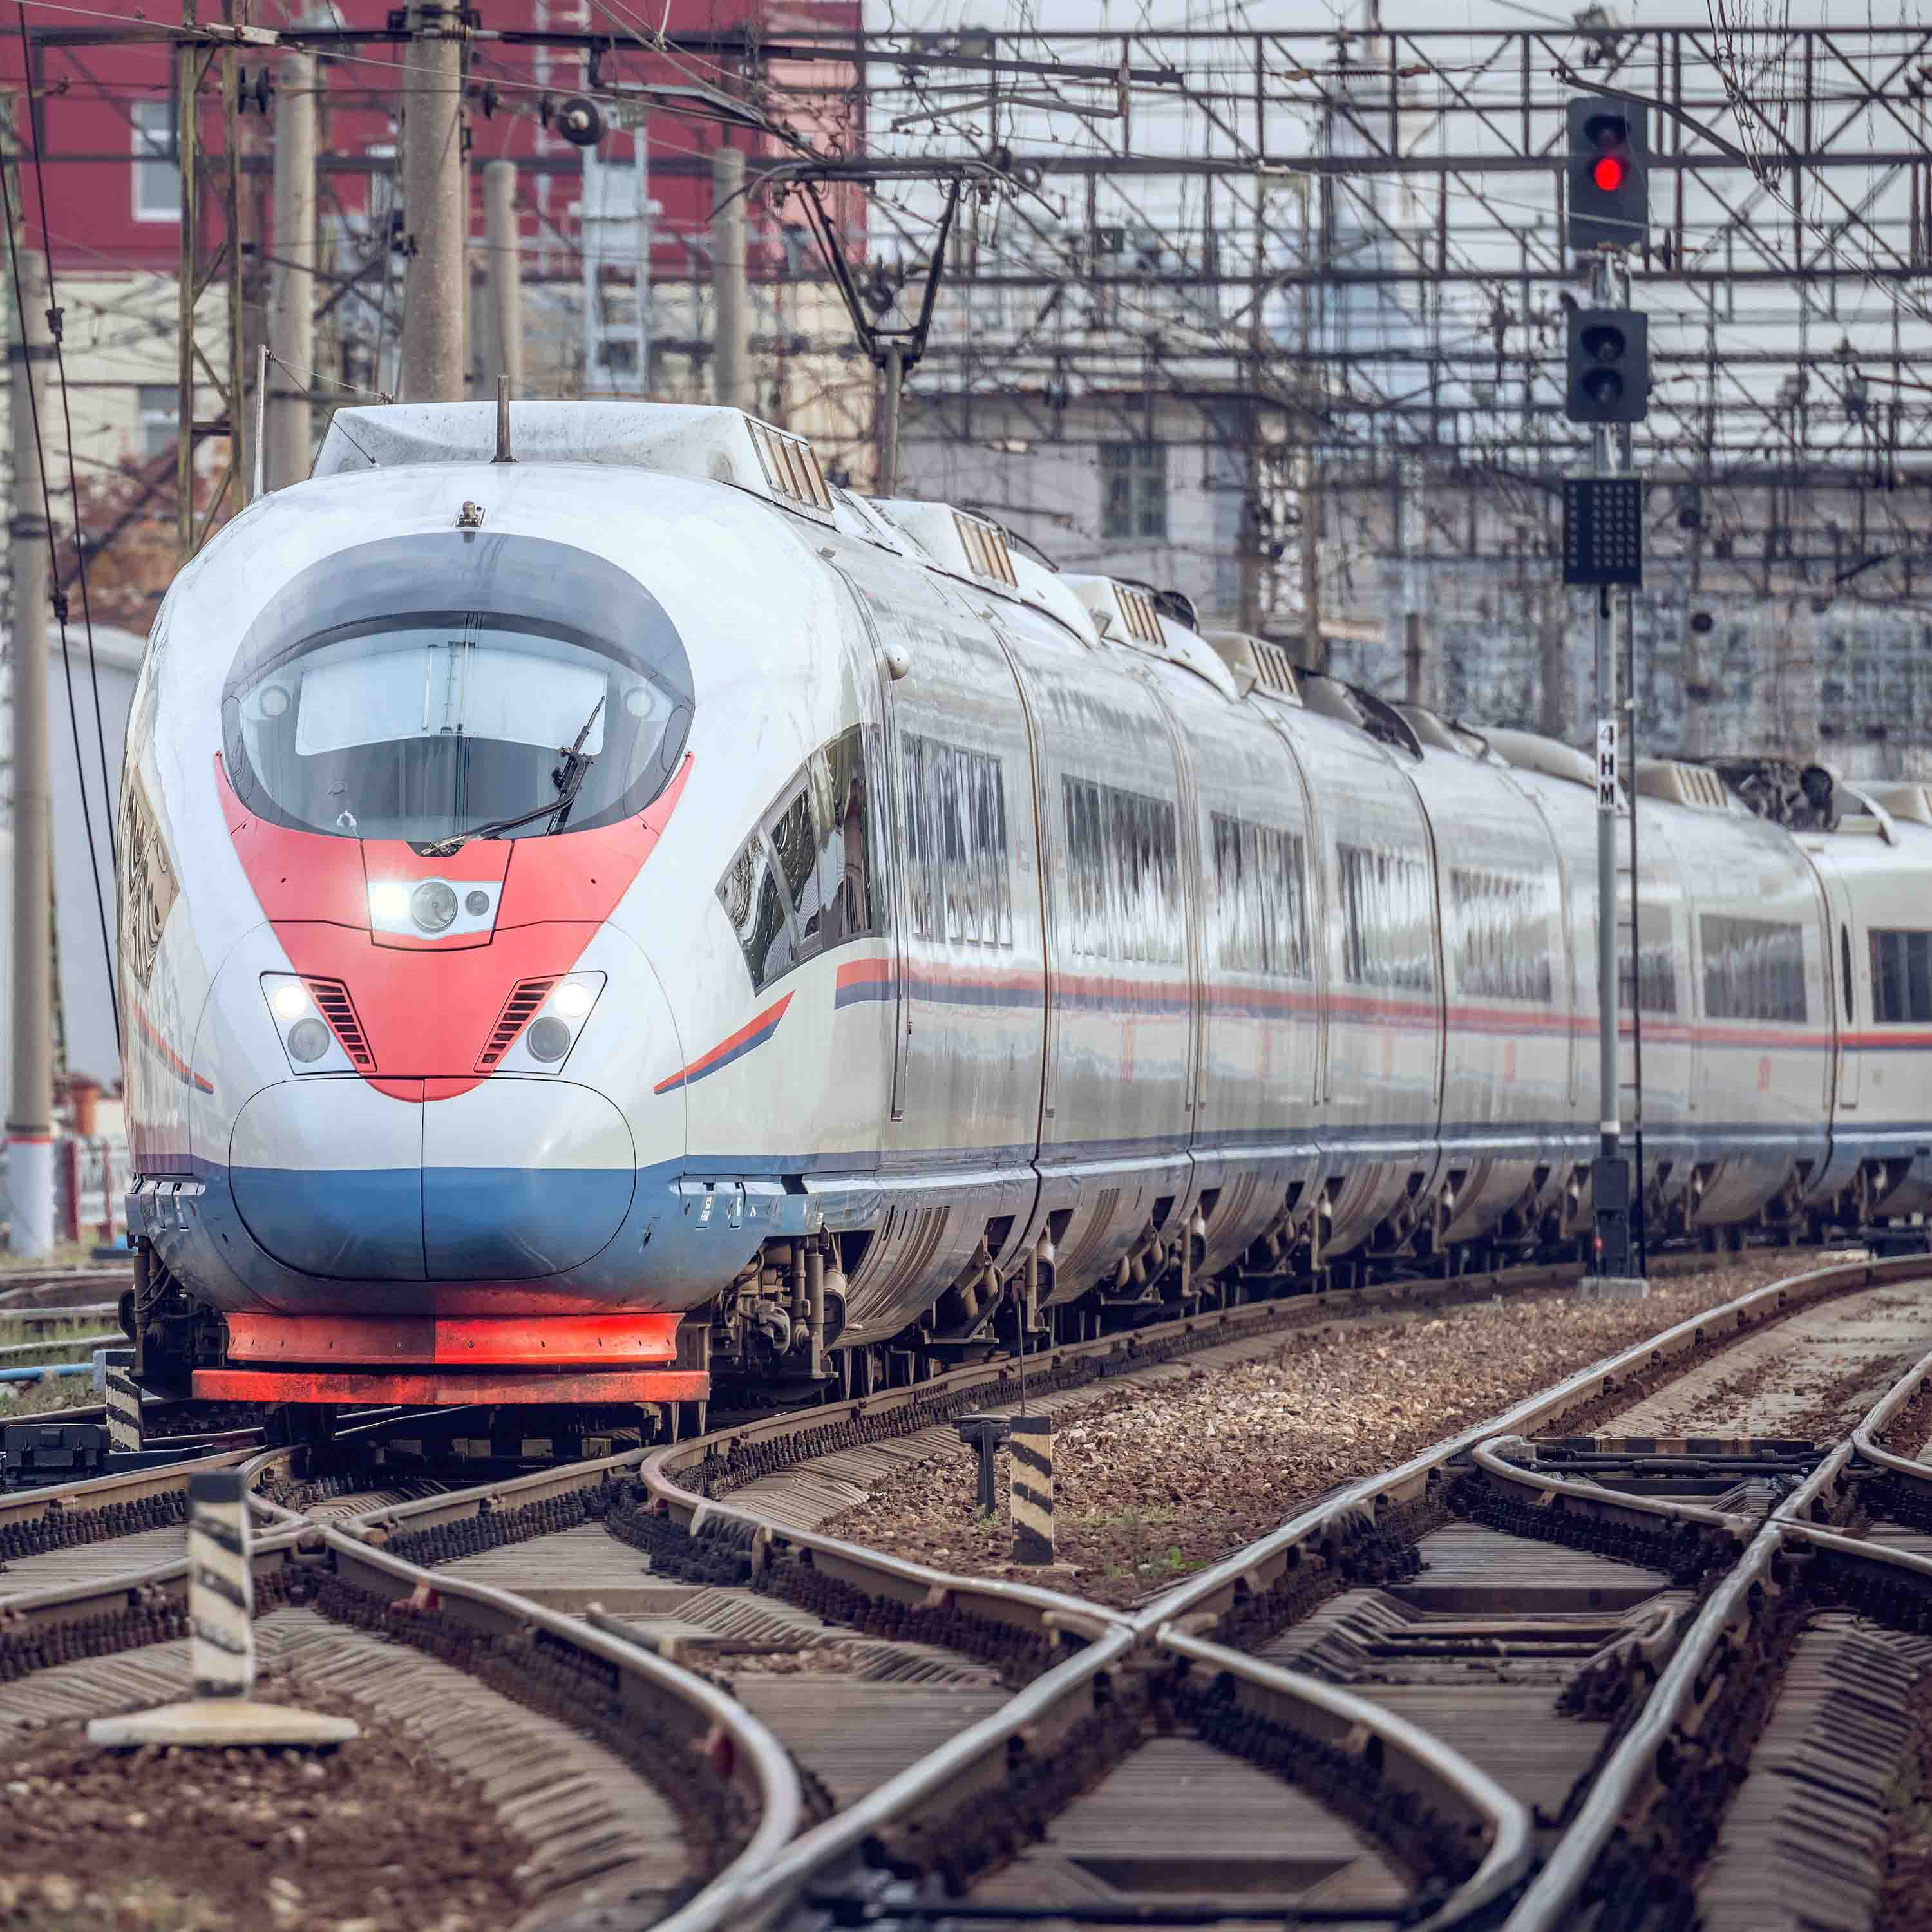 Enabling Effective Business Insights for a Train Operator